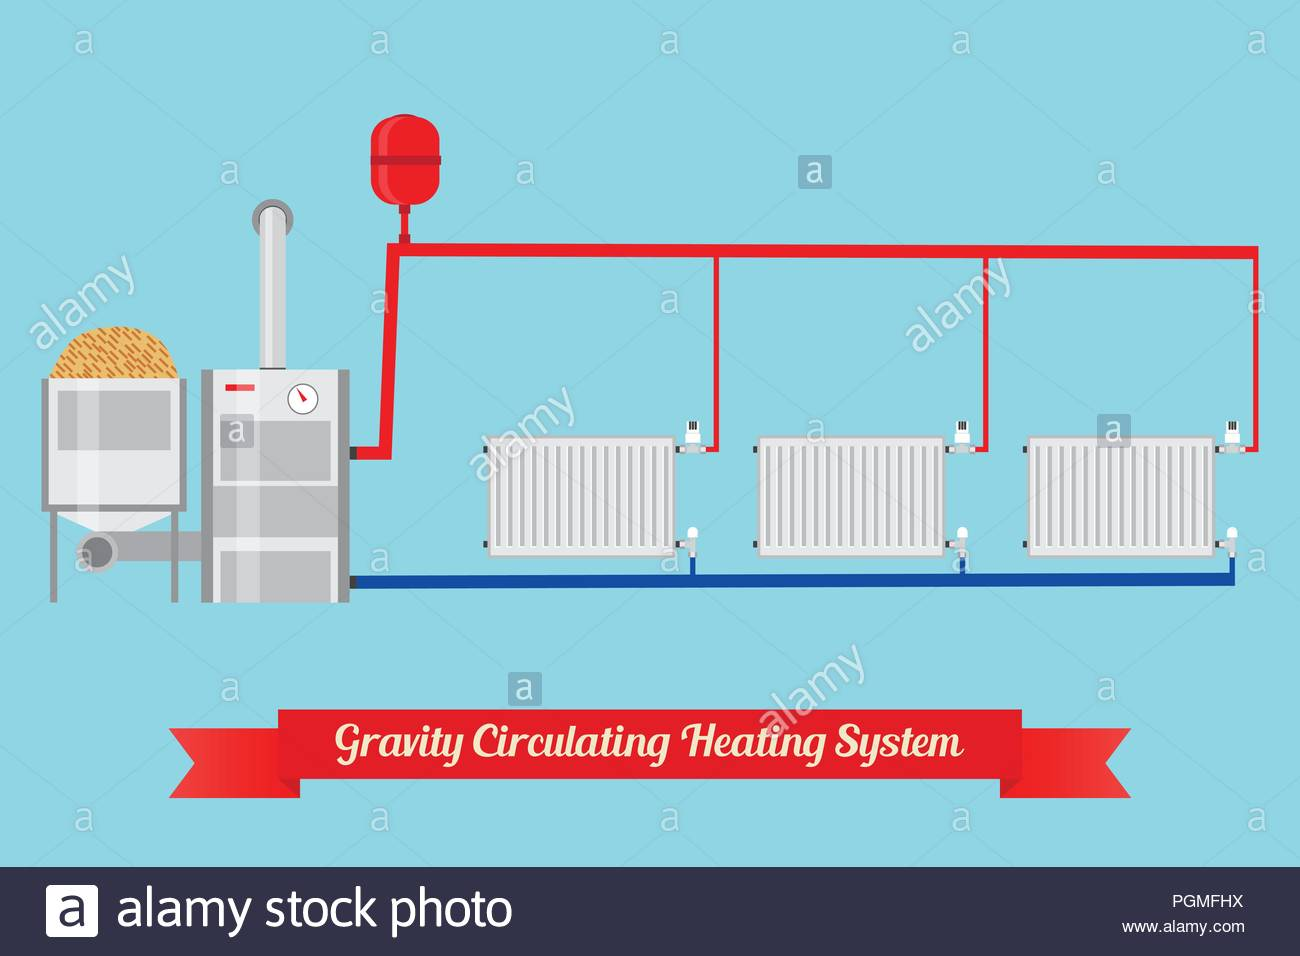 Heating System Water Pump Stock Photos & Heating System Water Pump ...